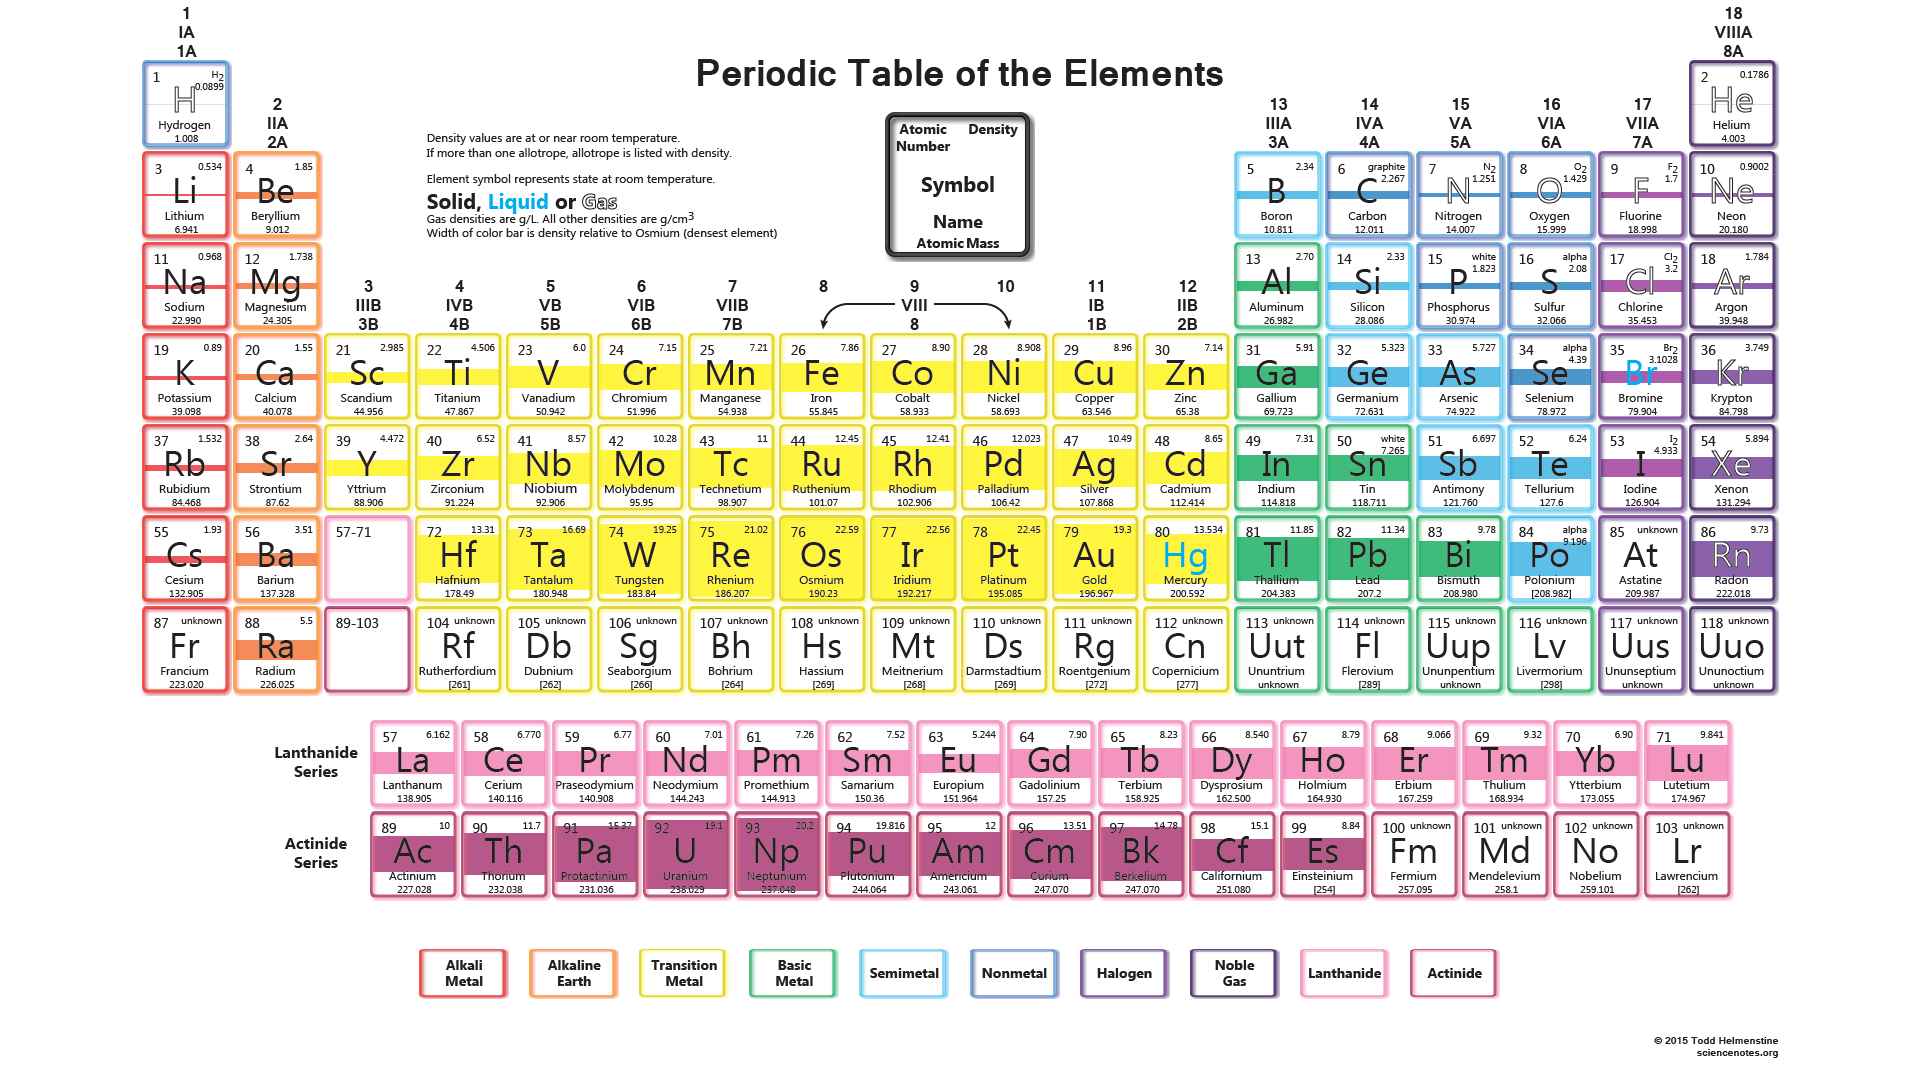 Density of all 118 chemical elements on the periodic table density of all 118 chemical elements on the periodic table urtaz Gallery